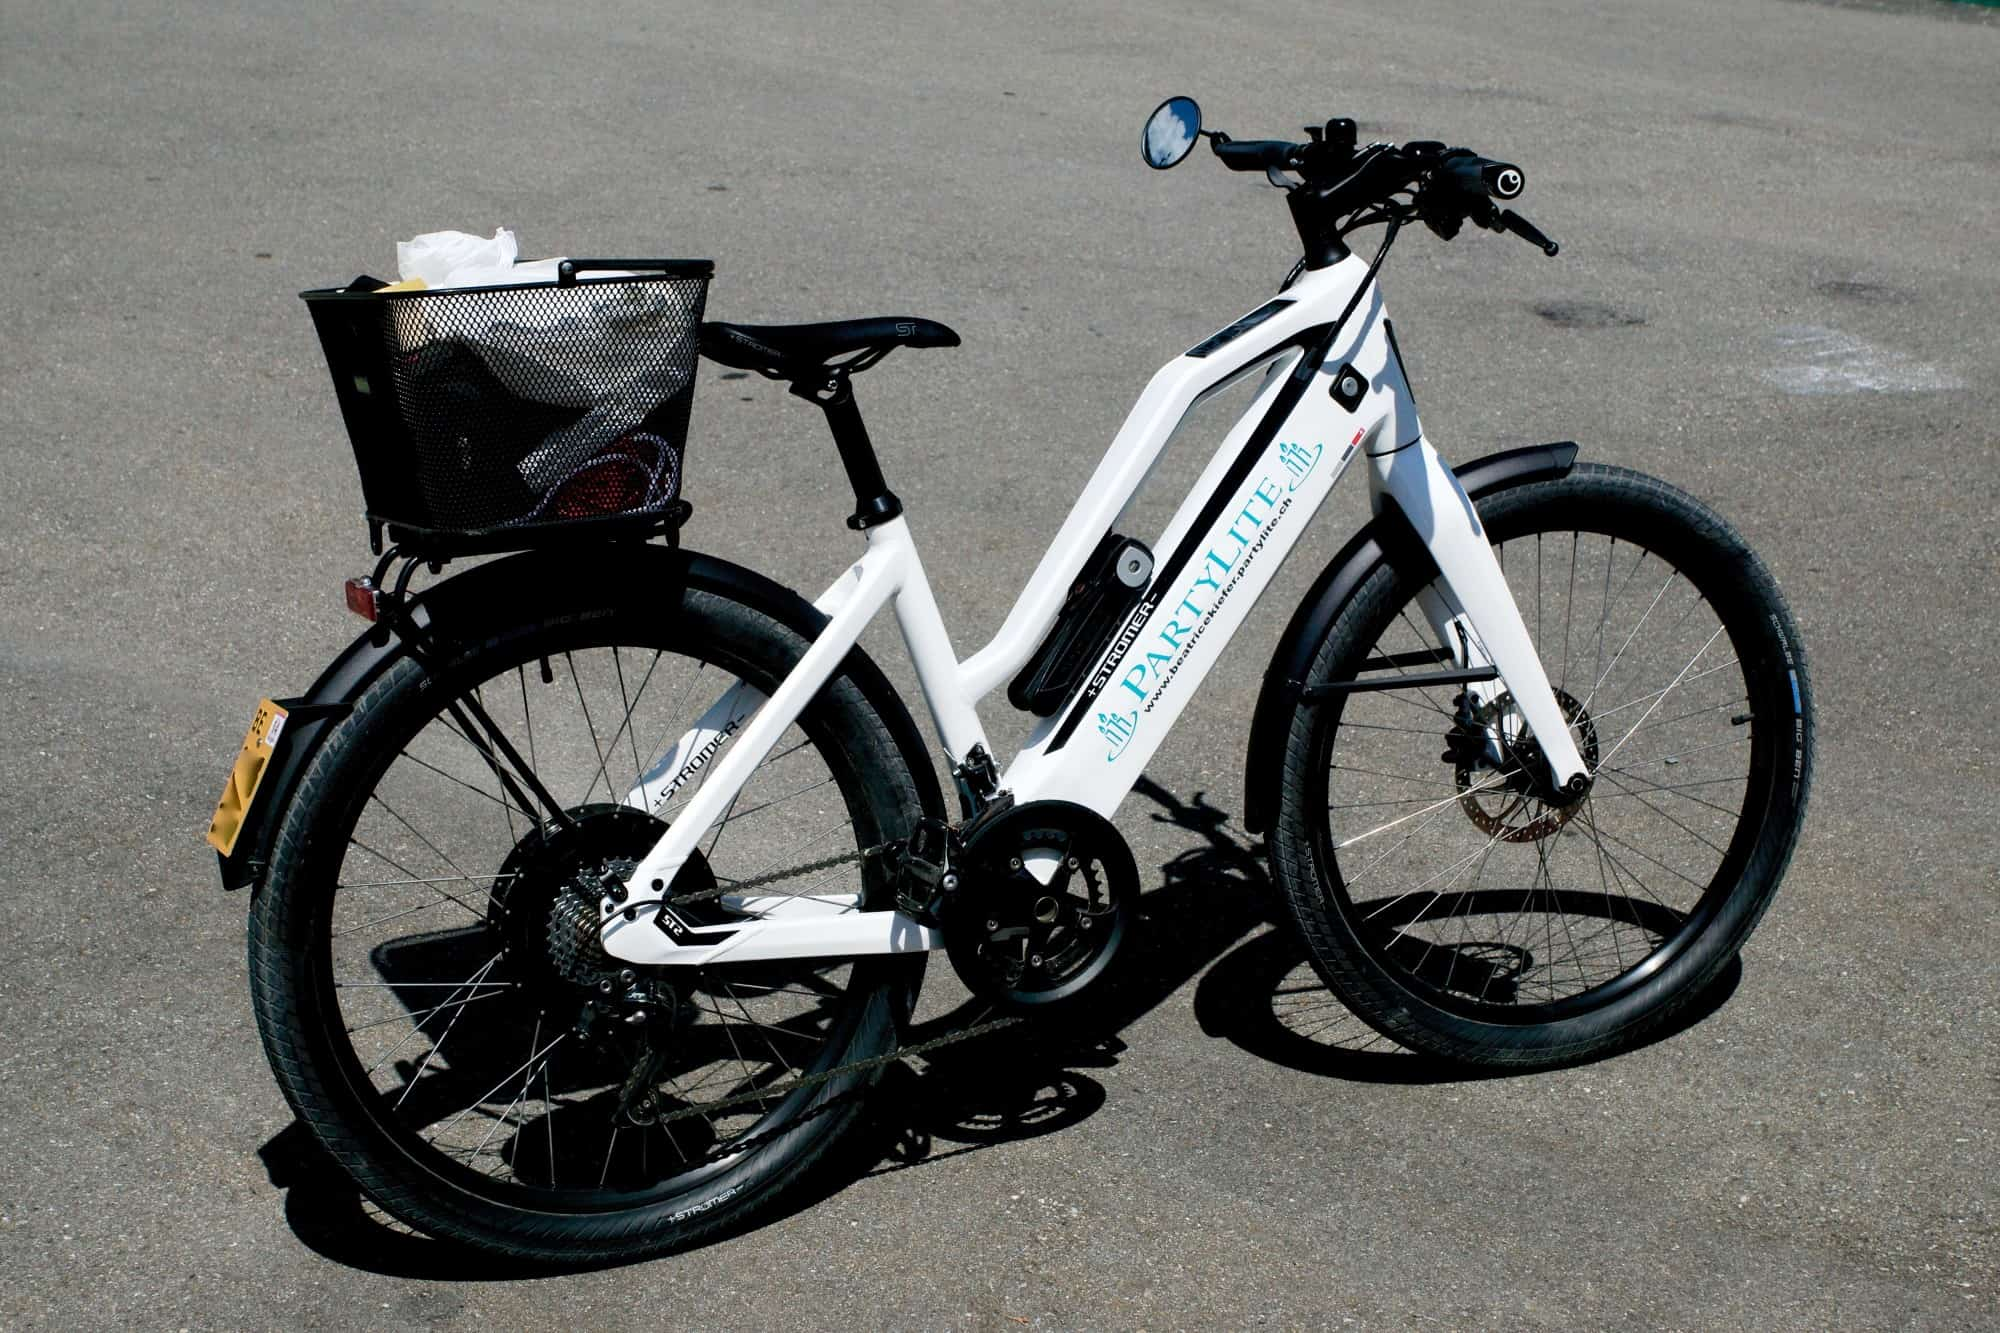 9 Reasons Why You Should Buy an E-Bike